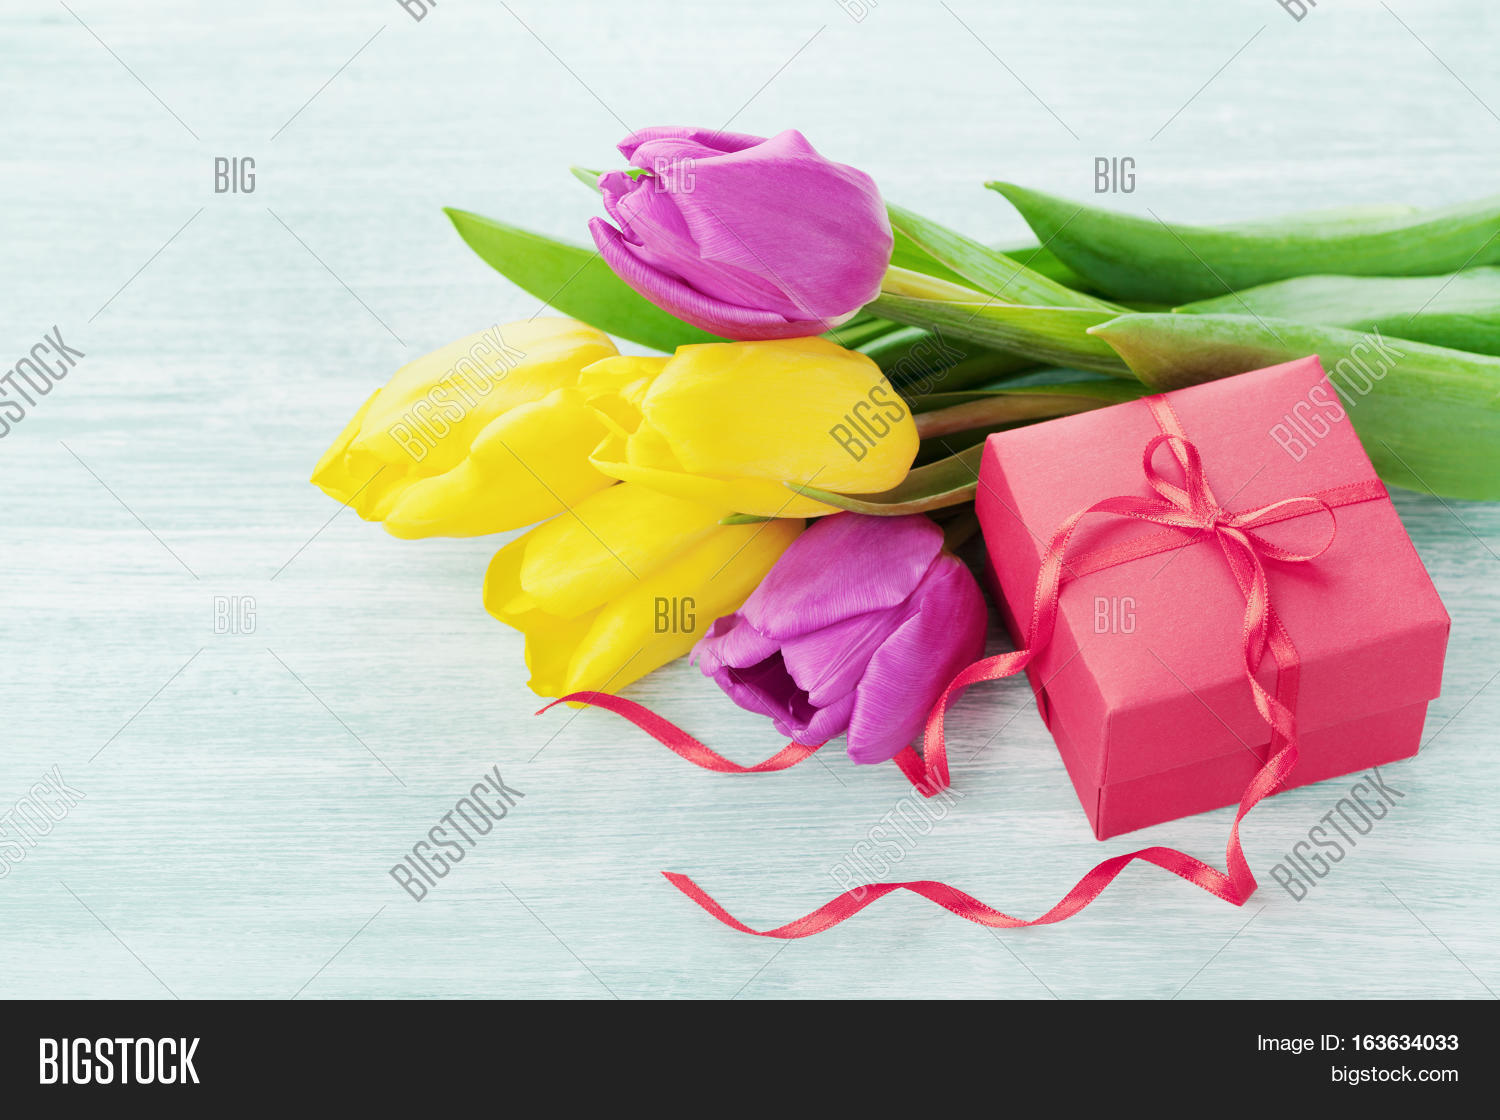 Spring Flowers Gift Image Photo Free Trial Bigstock